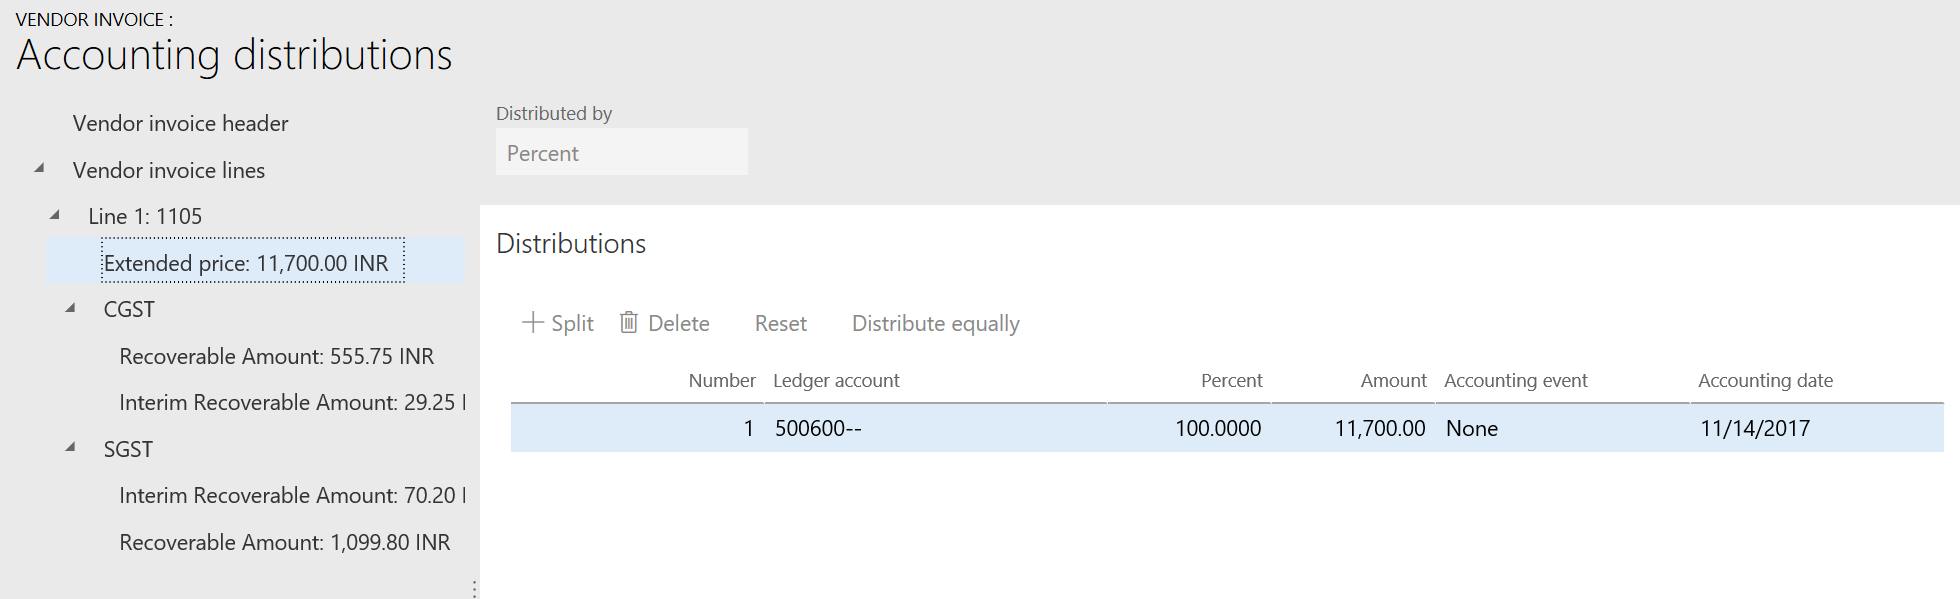 Tax engine integration - Finance & Operations | Dynamics 365 ...